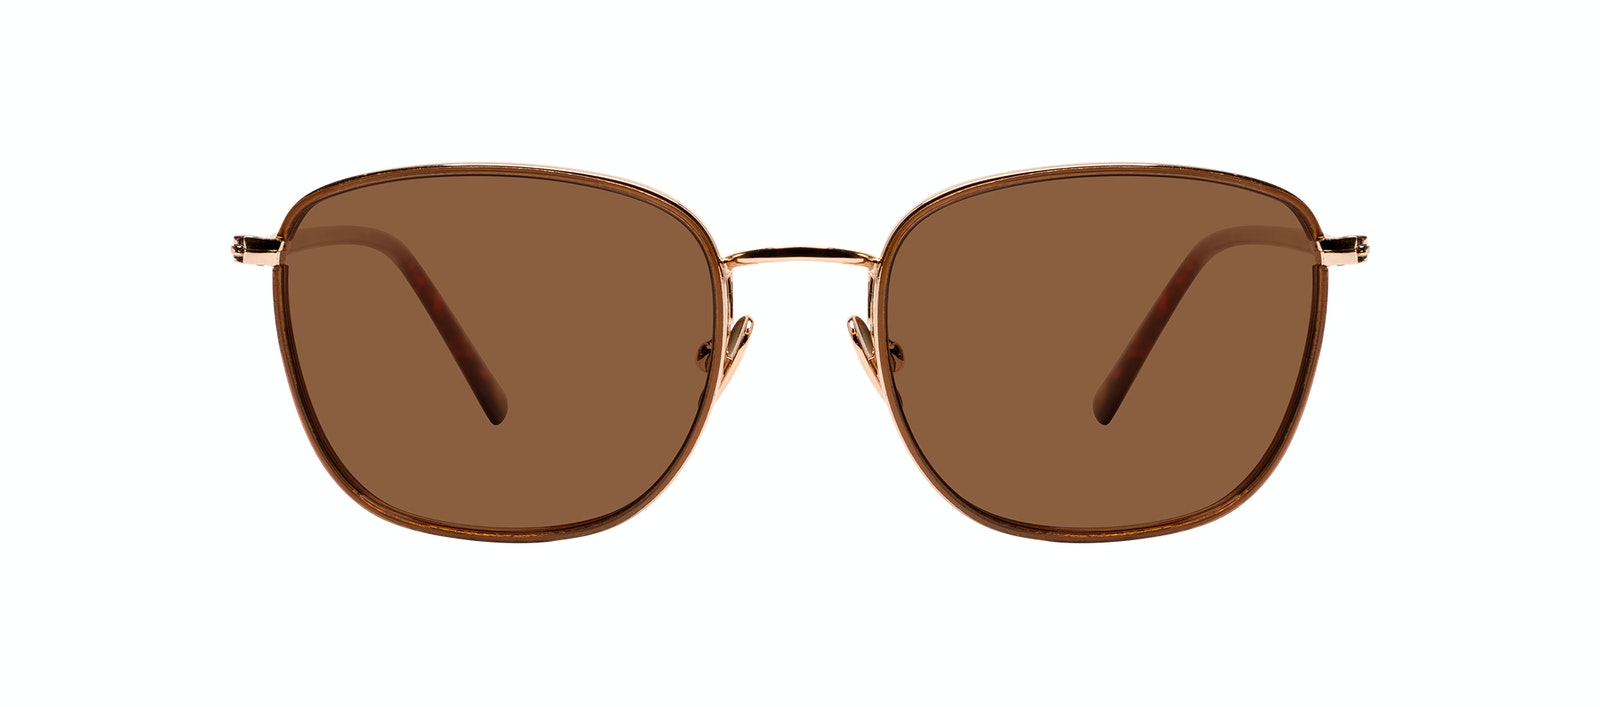 Affordable Fashion Glasses Rectangle Sunglasses Women Lawrence XS Santal Front